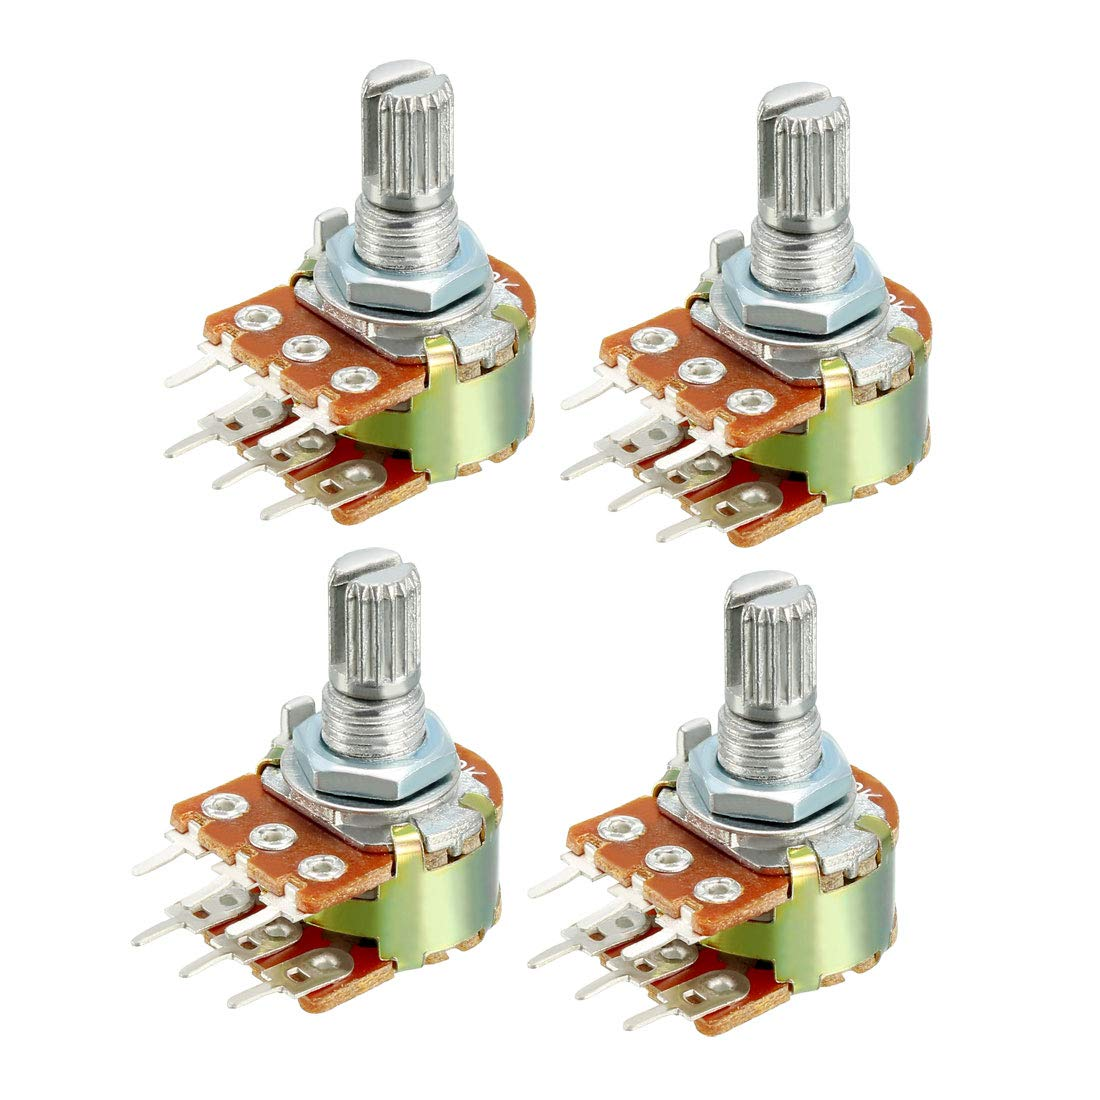 uxcell WH148 1K Ohm Variable Resistors Dual Turn